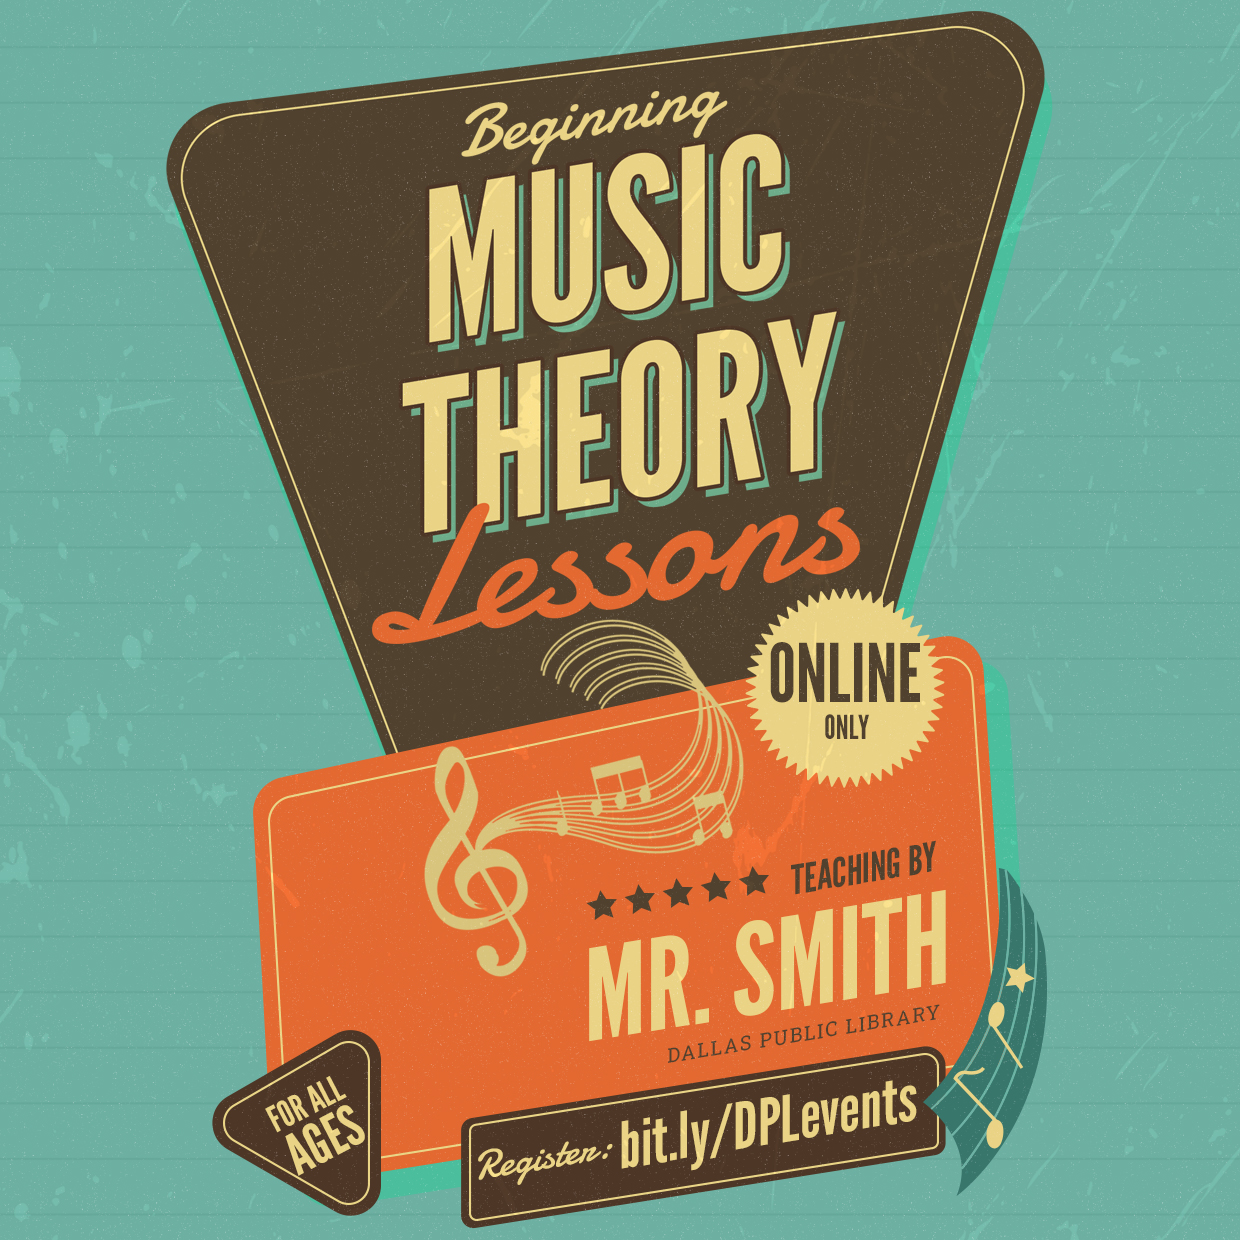 Beginning Music Theory